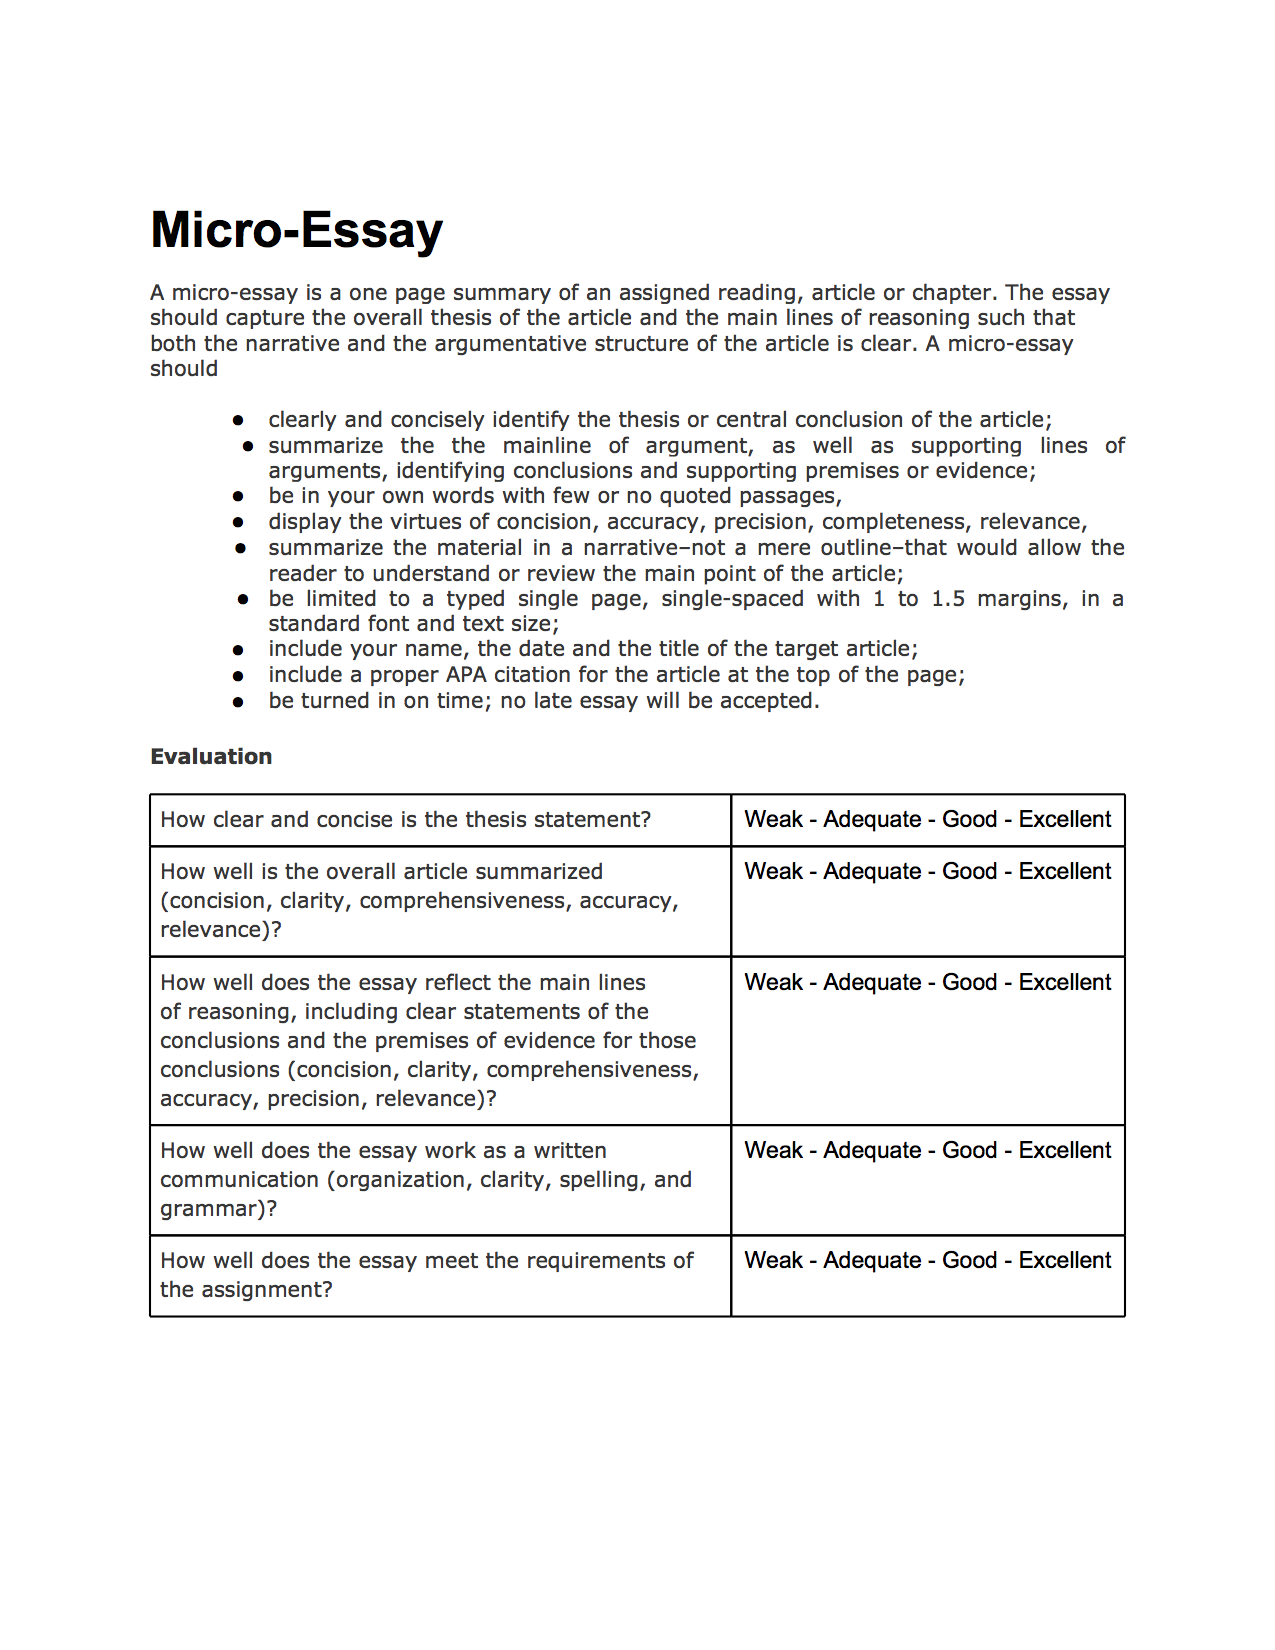 micro essays darwin and philosophy  micro essays